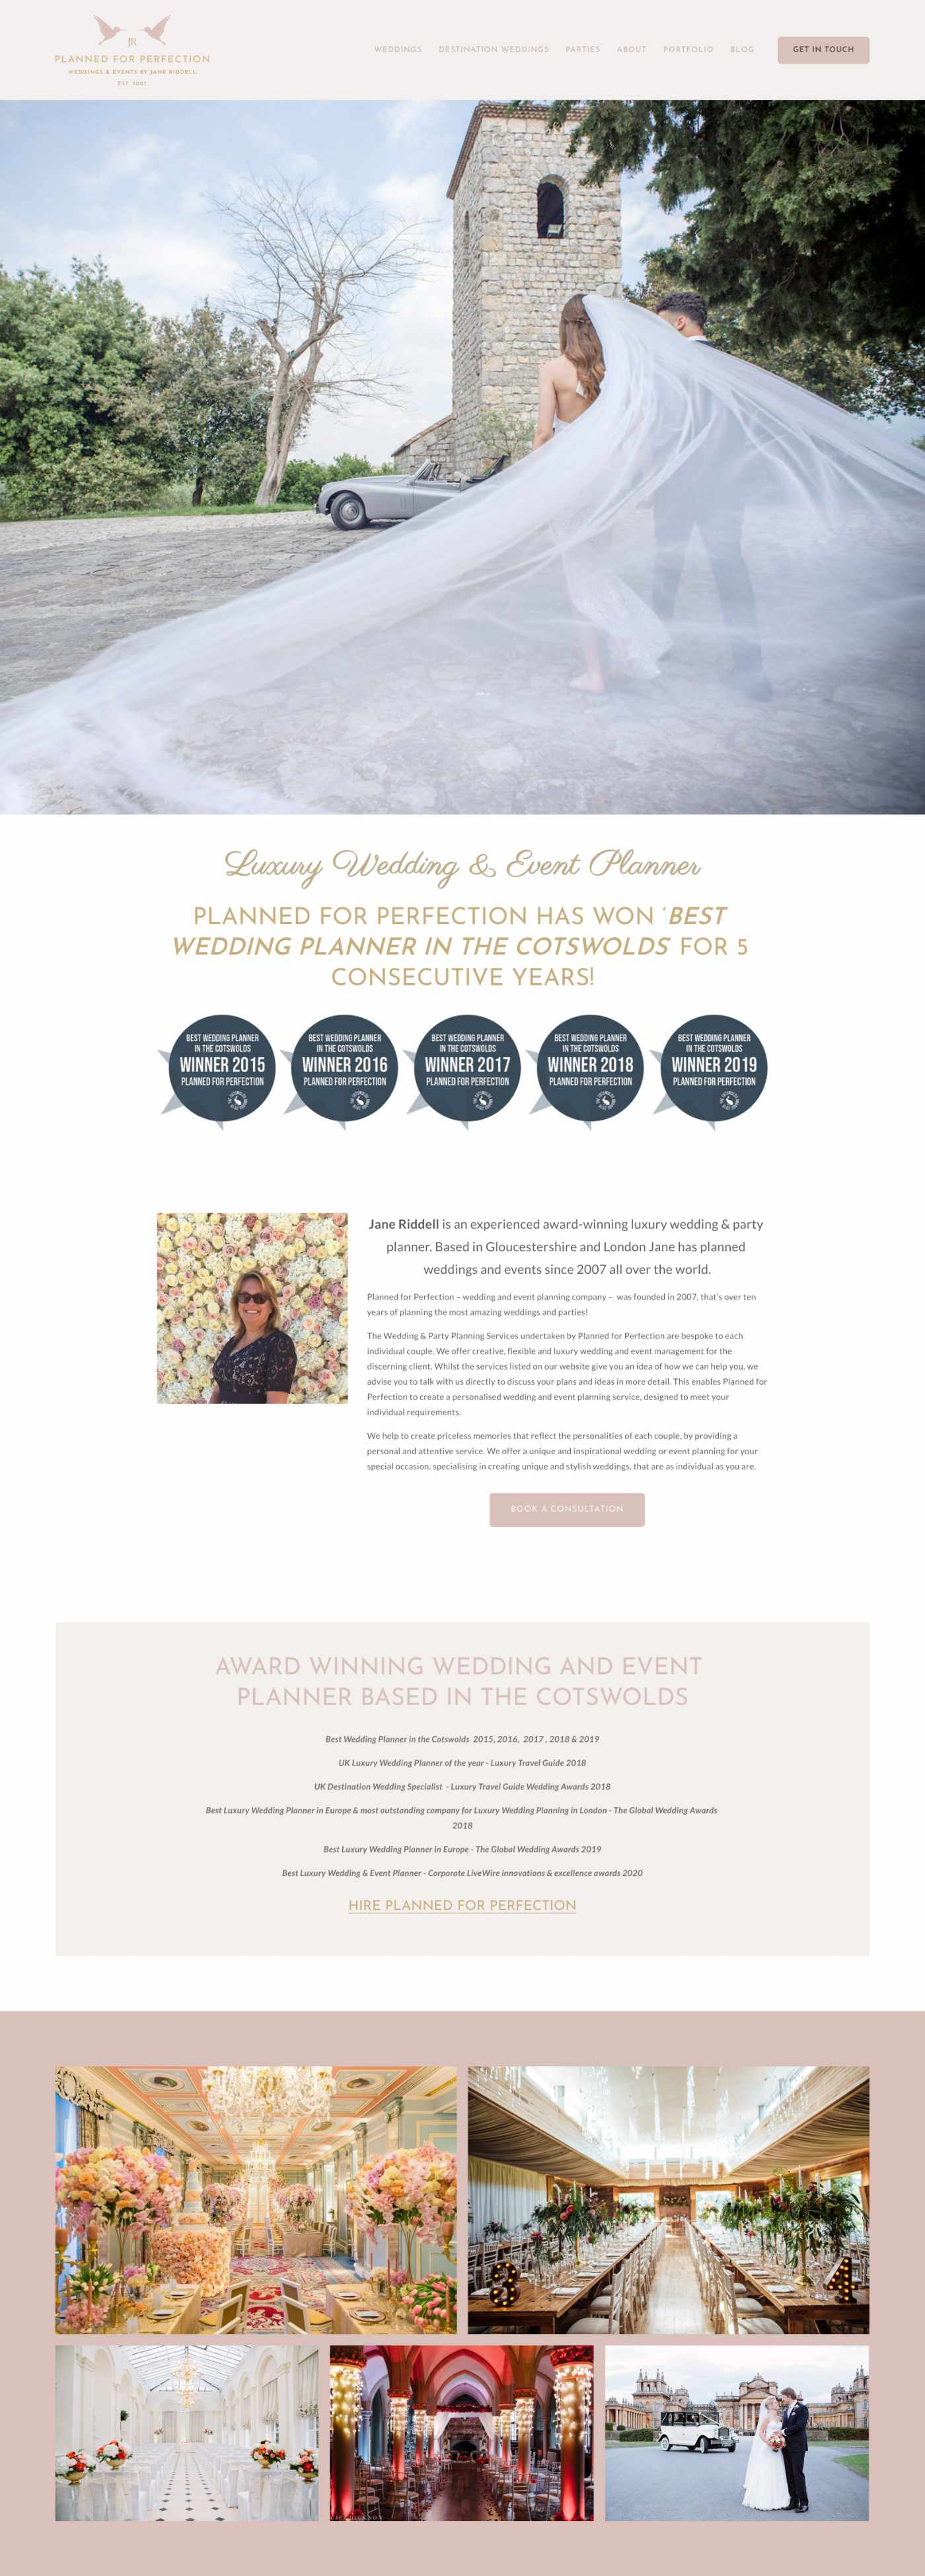 Wedding Planner Website Design